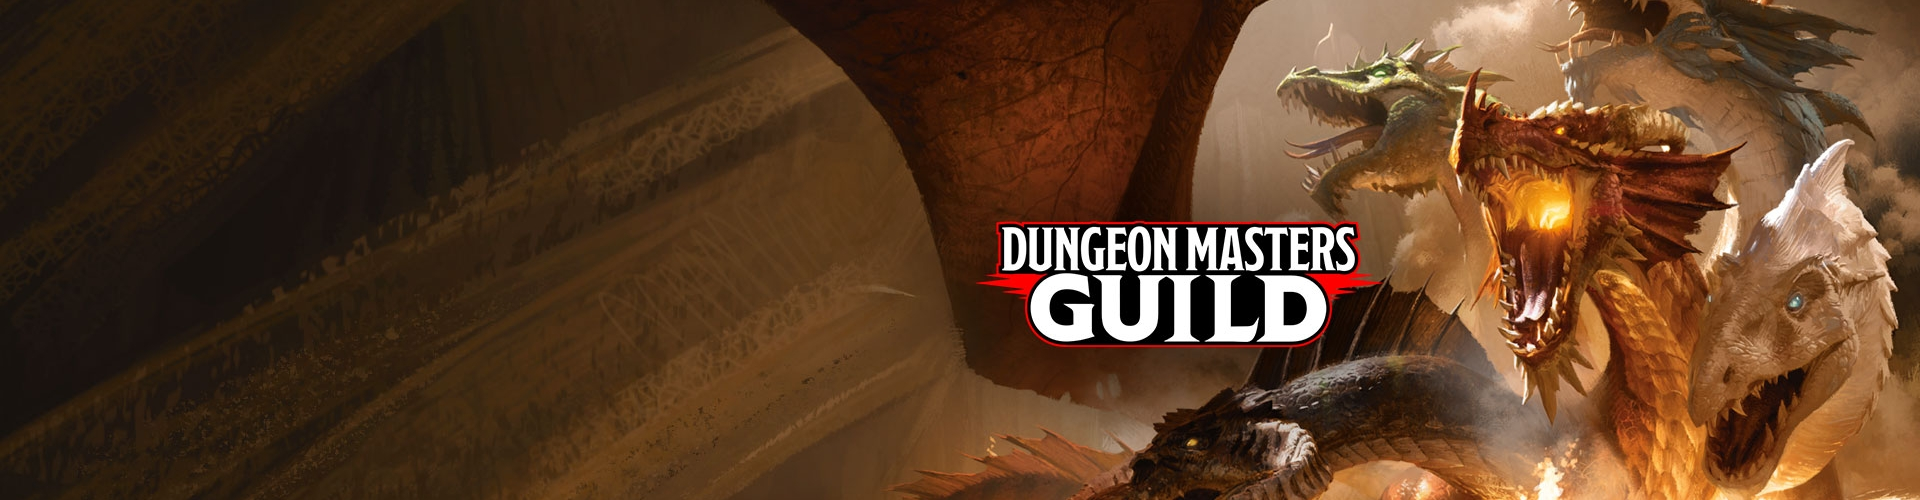 DMs Guild Adept News